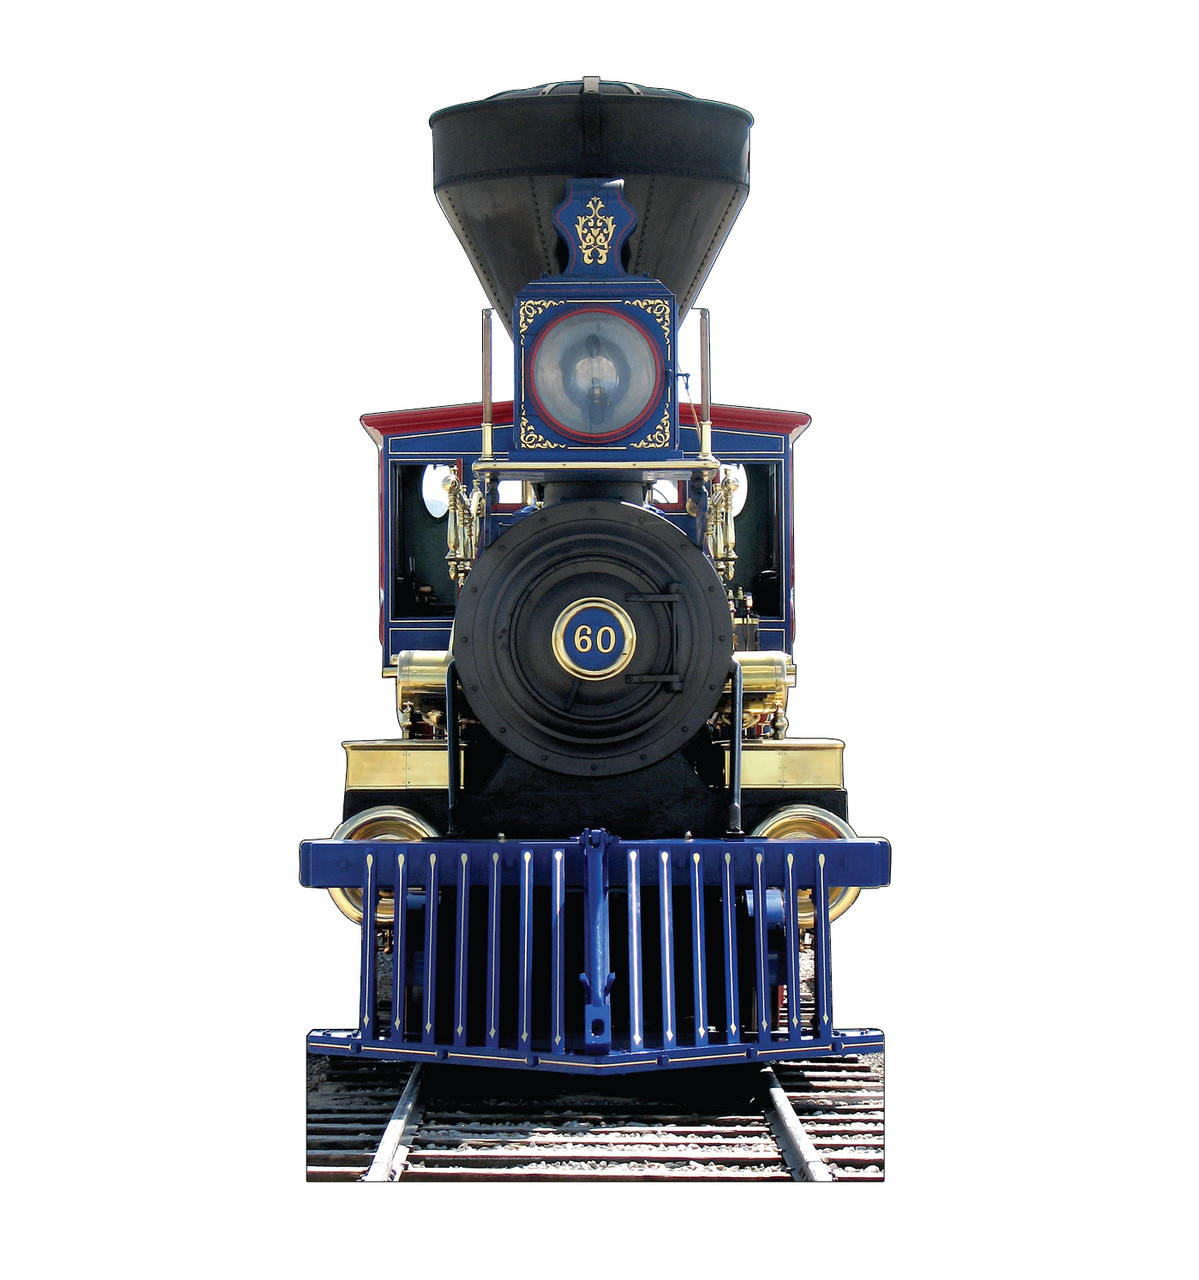 Life-size cardboard standee of CP60 Jupiter Train with sound.